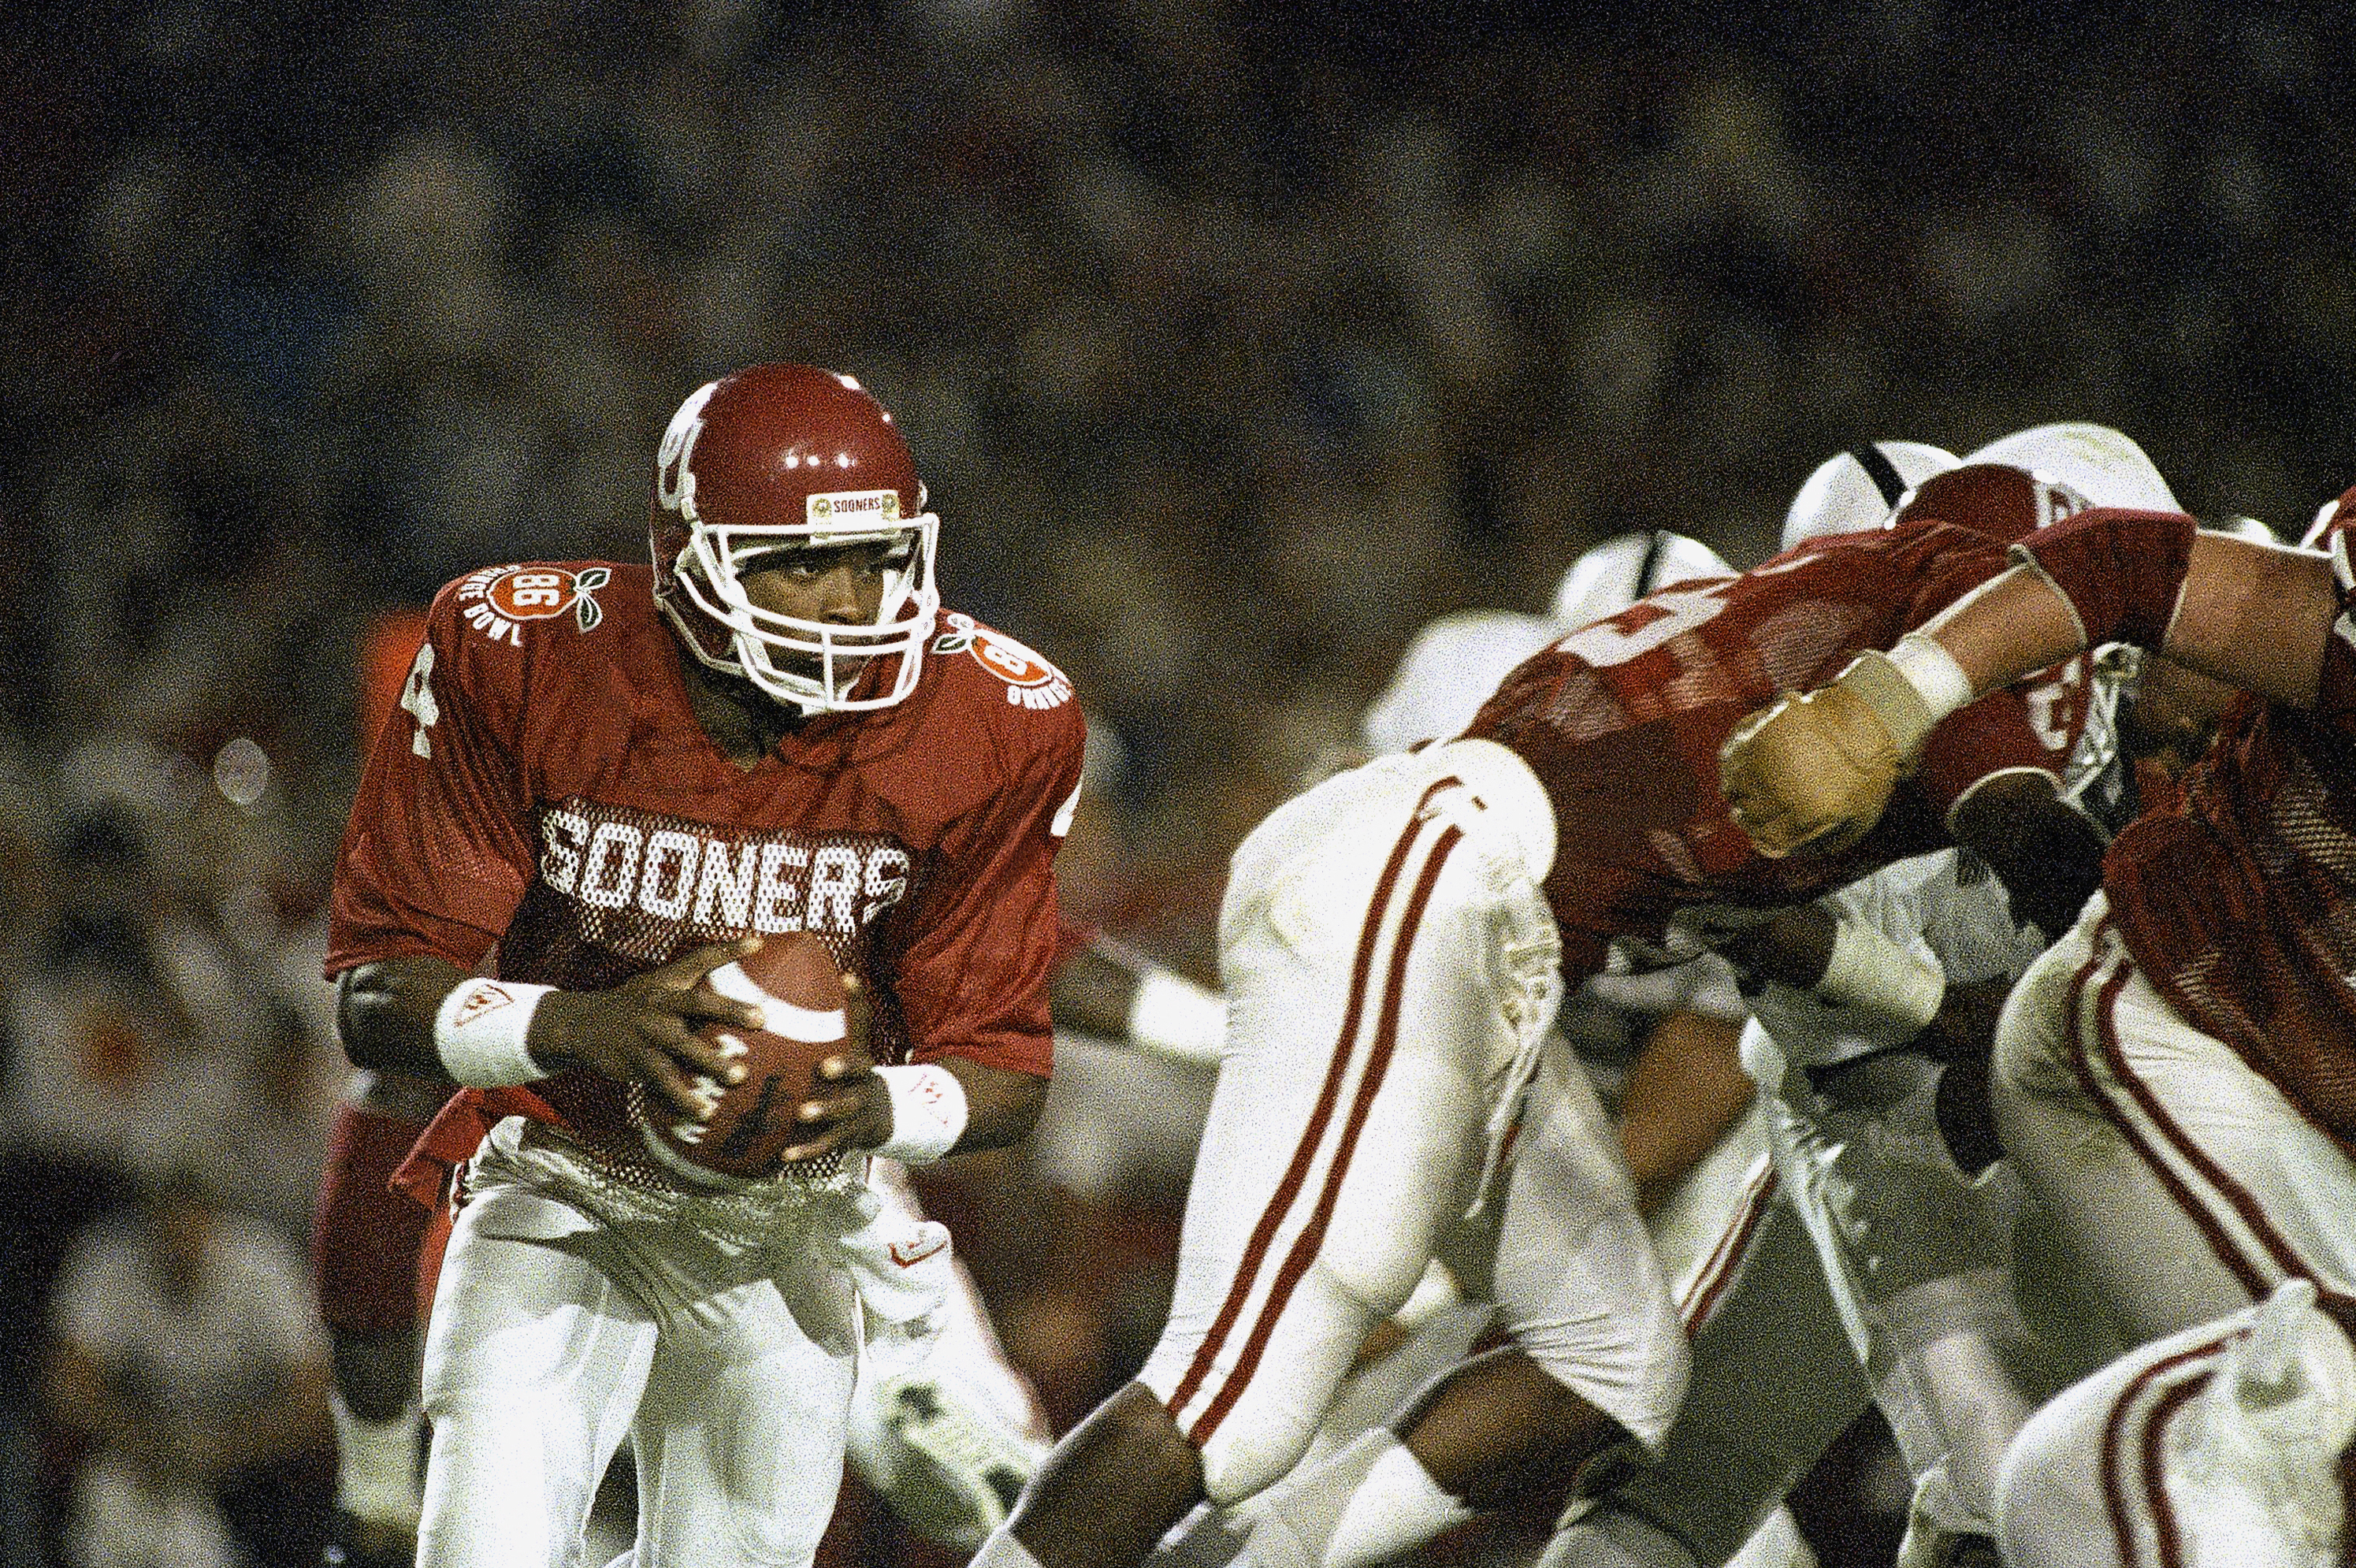 FILE - In this Jan. 1, 1986 file photo, University of Oklahoma quarterback Jamelle Holieway (4) looks for an open man as his team battles Penn State University in the Orange Bowl in Miami. Holieway dazzled the college football world as a true freshman who